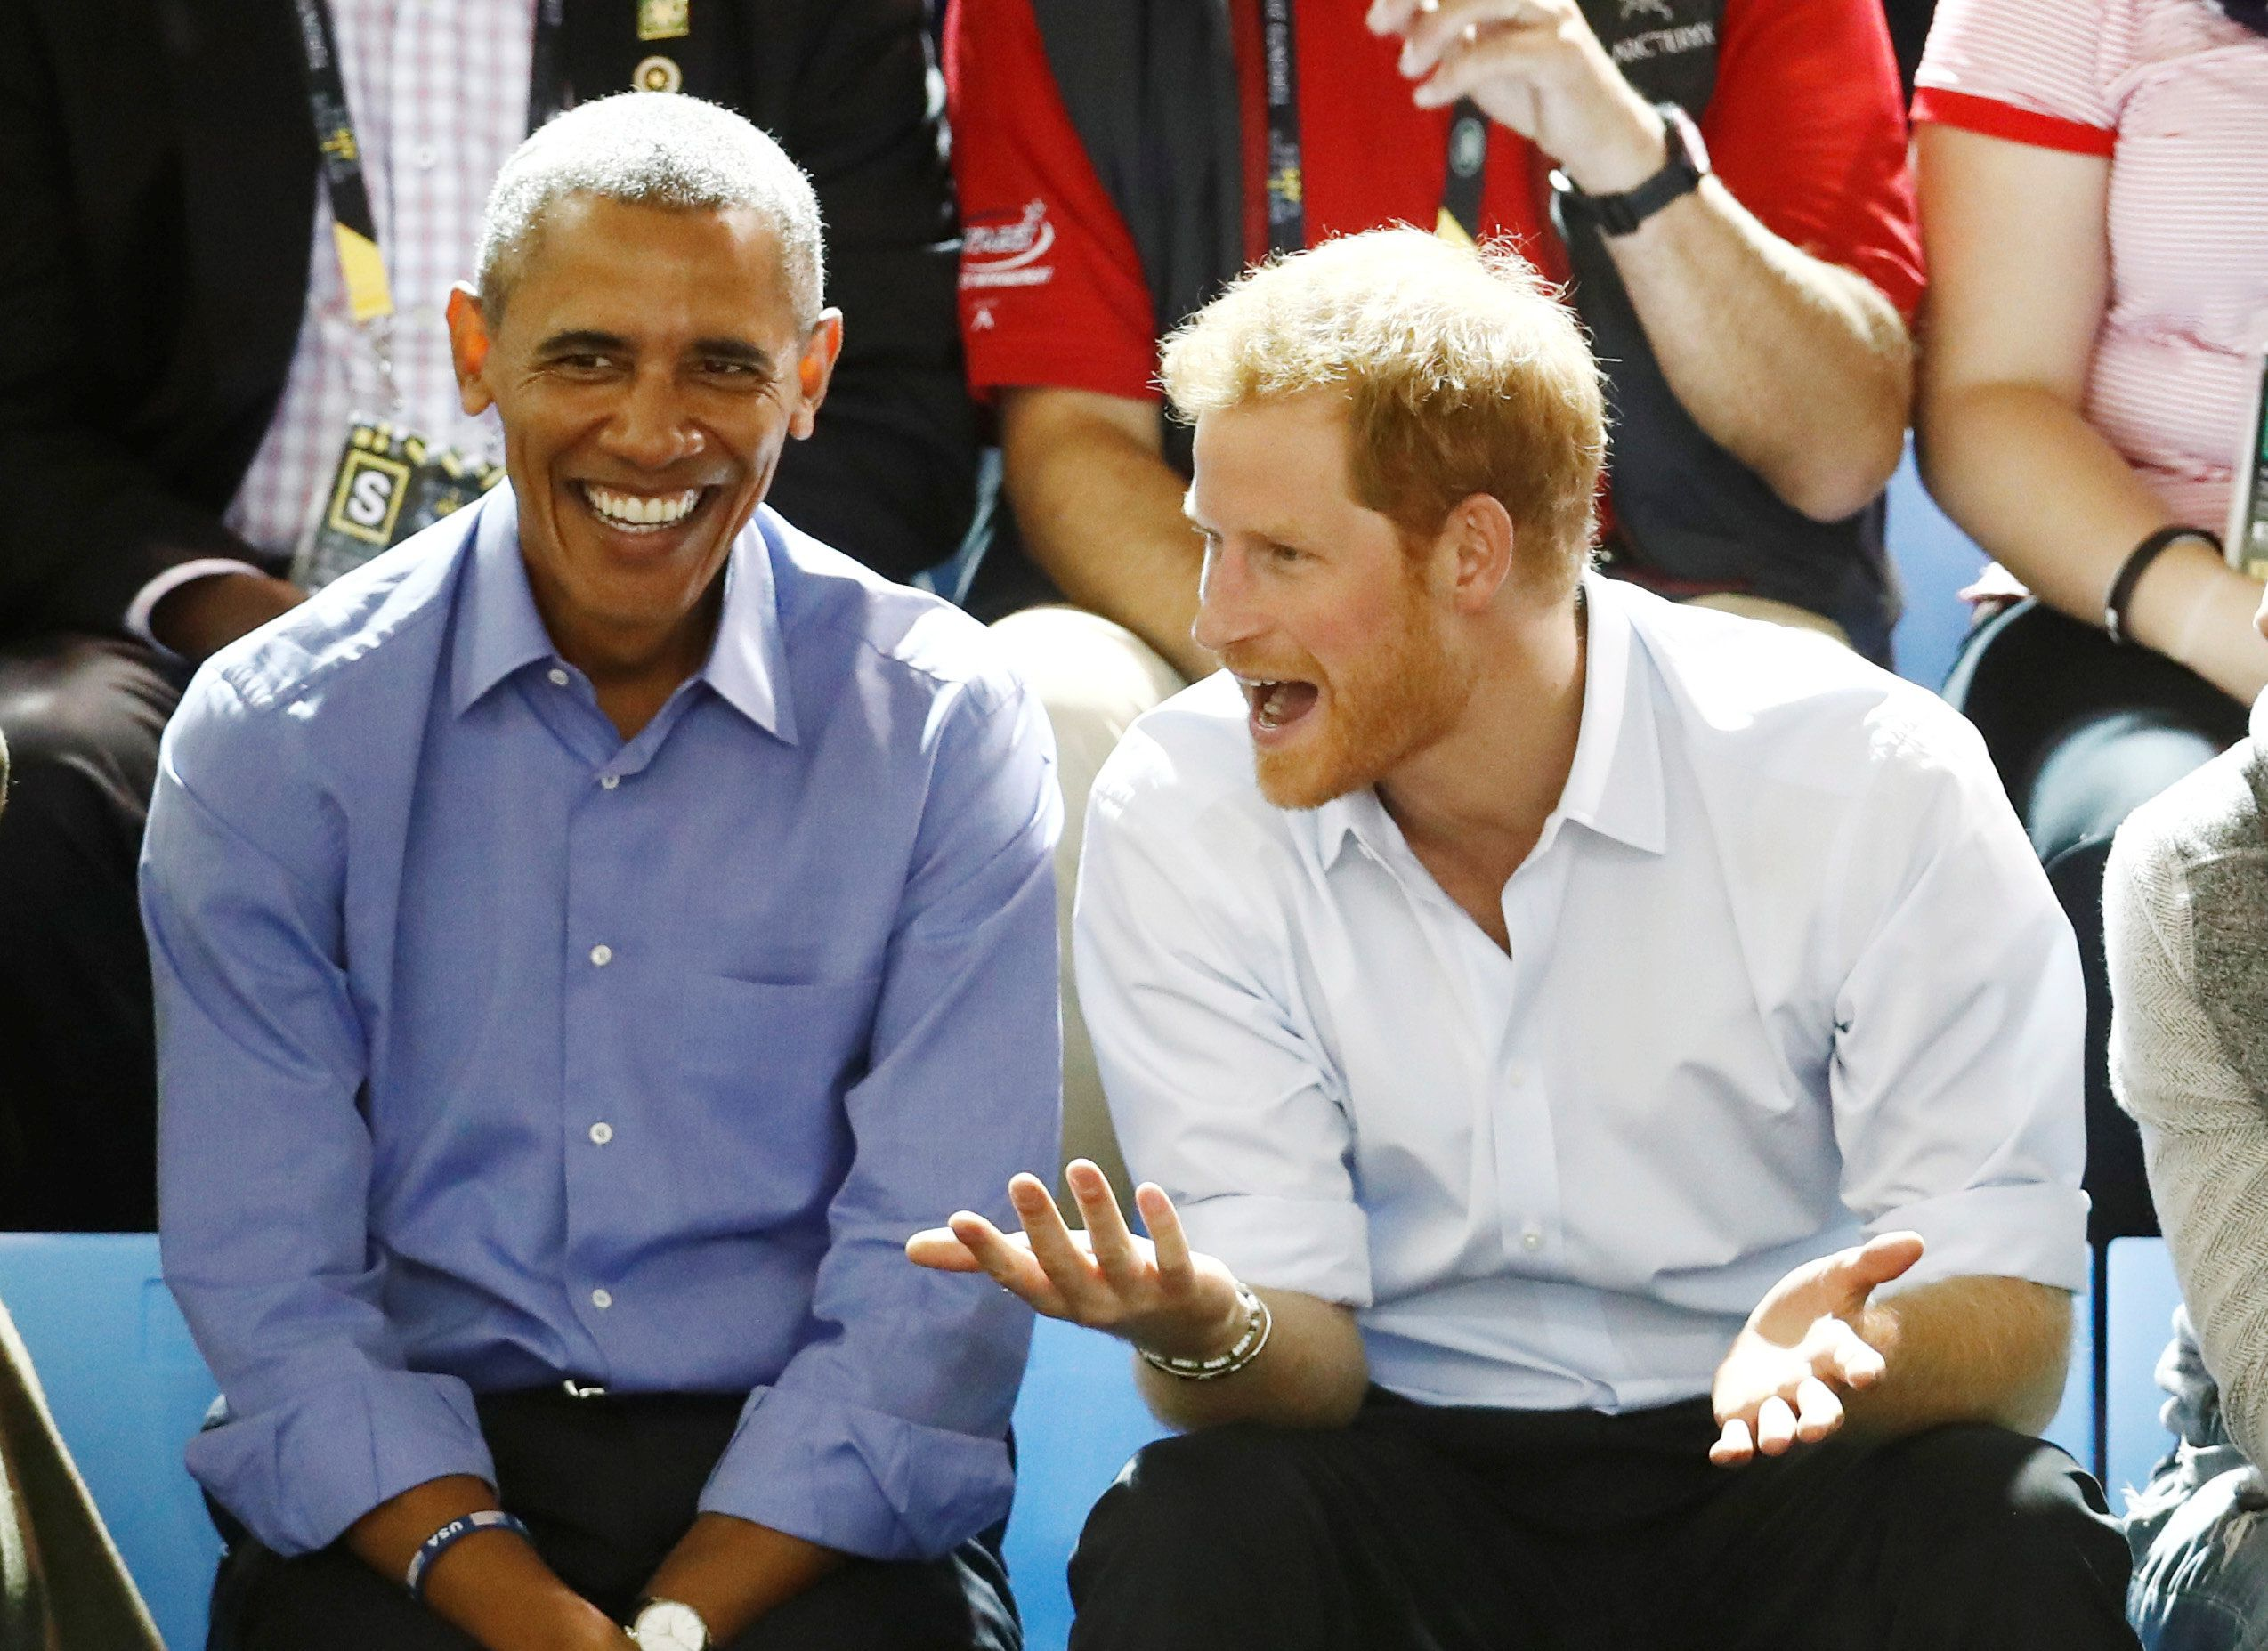 Britain's Prince Harry (R) and former U.S. President Barack Obama watch a wheelchair basketball event during the Invictus Games in Toronto, Ontario, Canada September 29, 2017.    . REUTERS/Mark Blinch